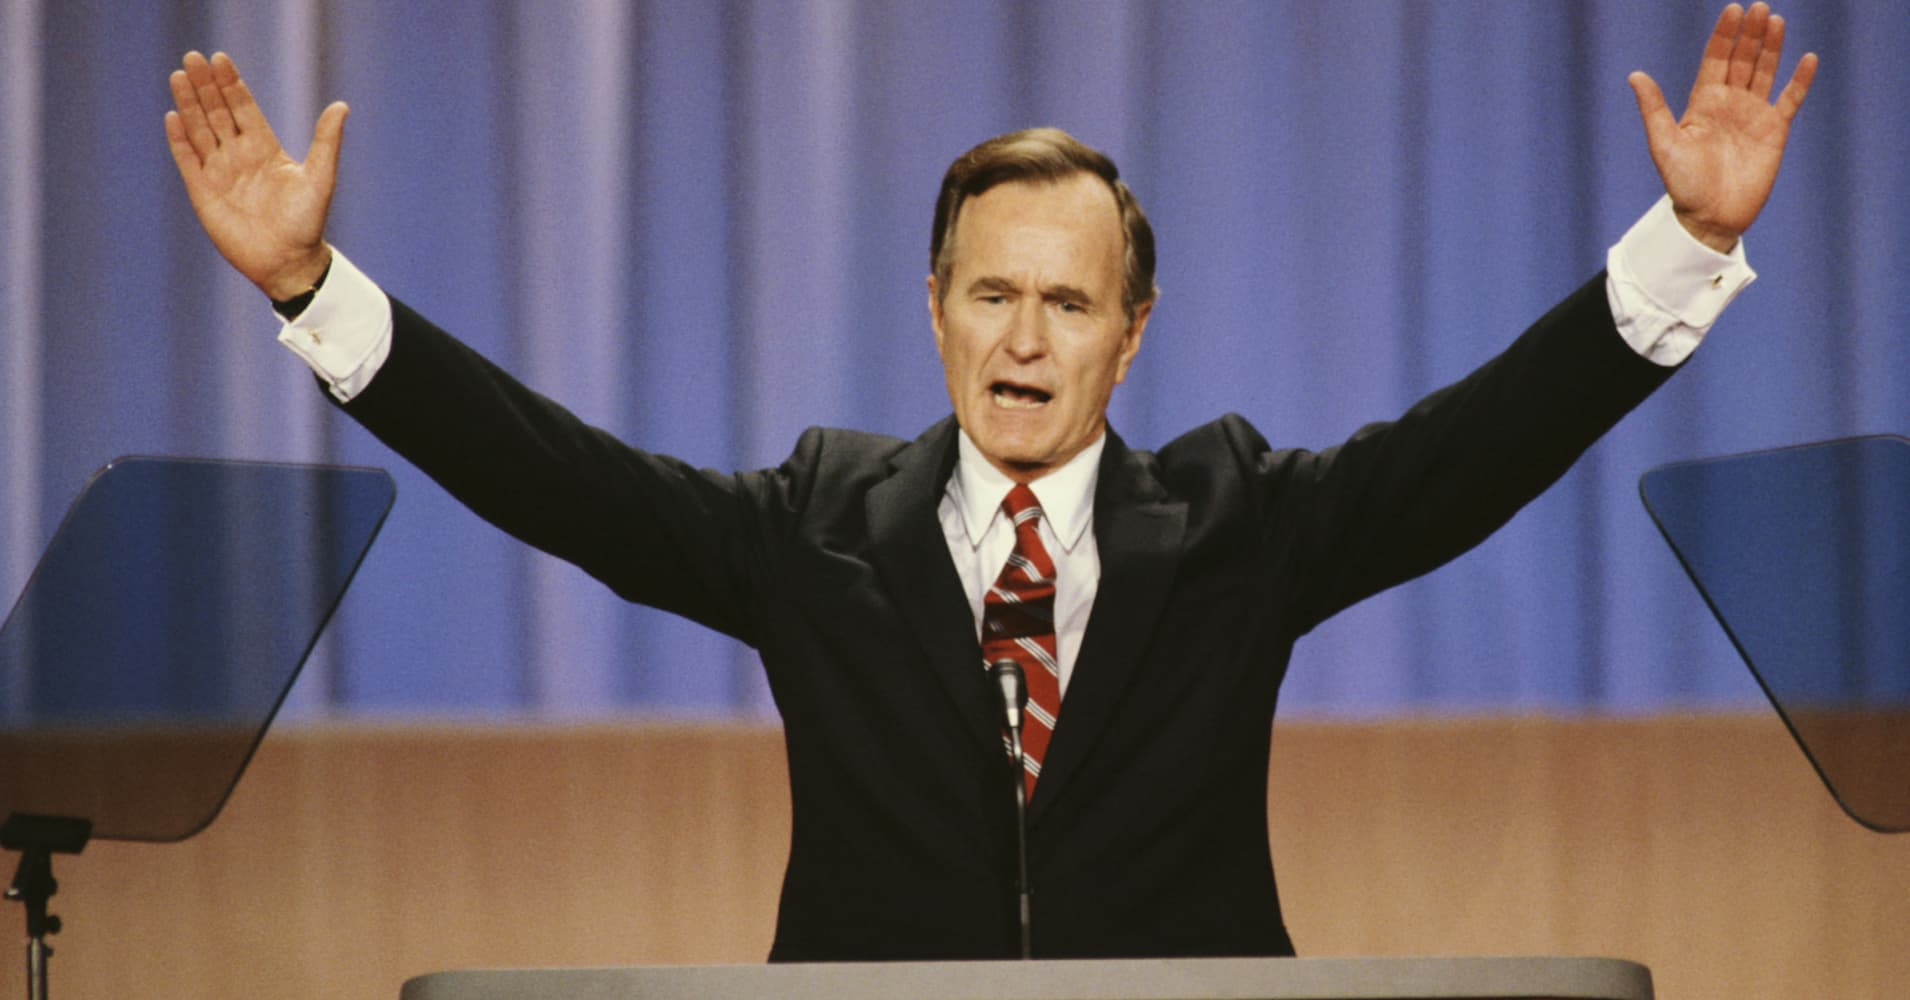 George HW Bush's compromise on raising taxes defied conservatives – and altered American politics